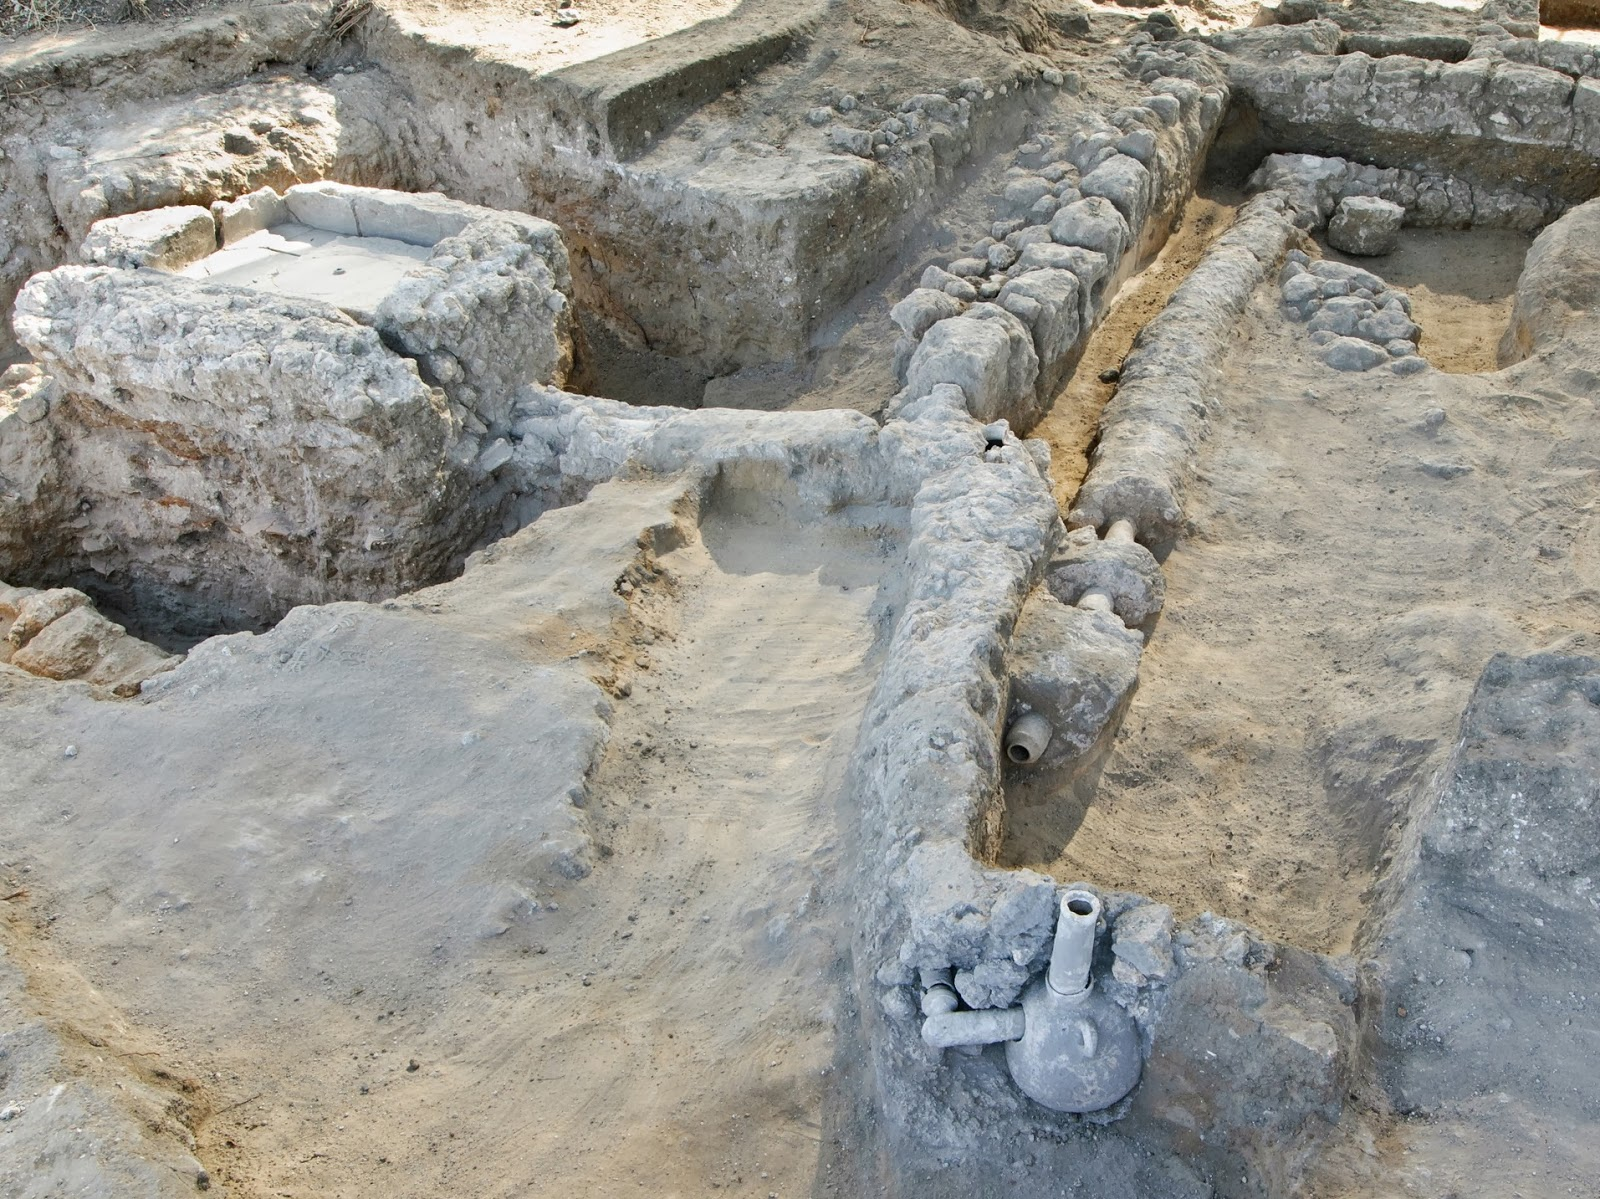 Medieval Arab mansion unearthed in Israel